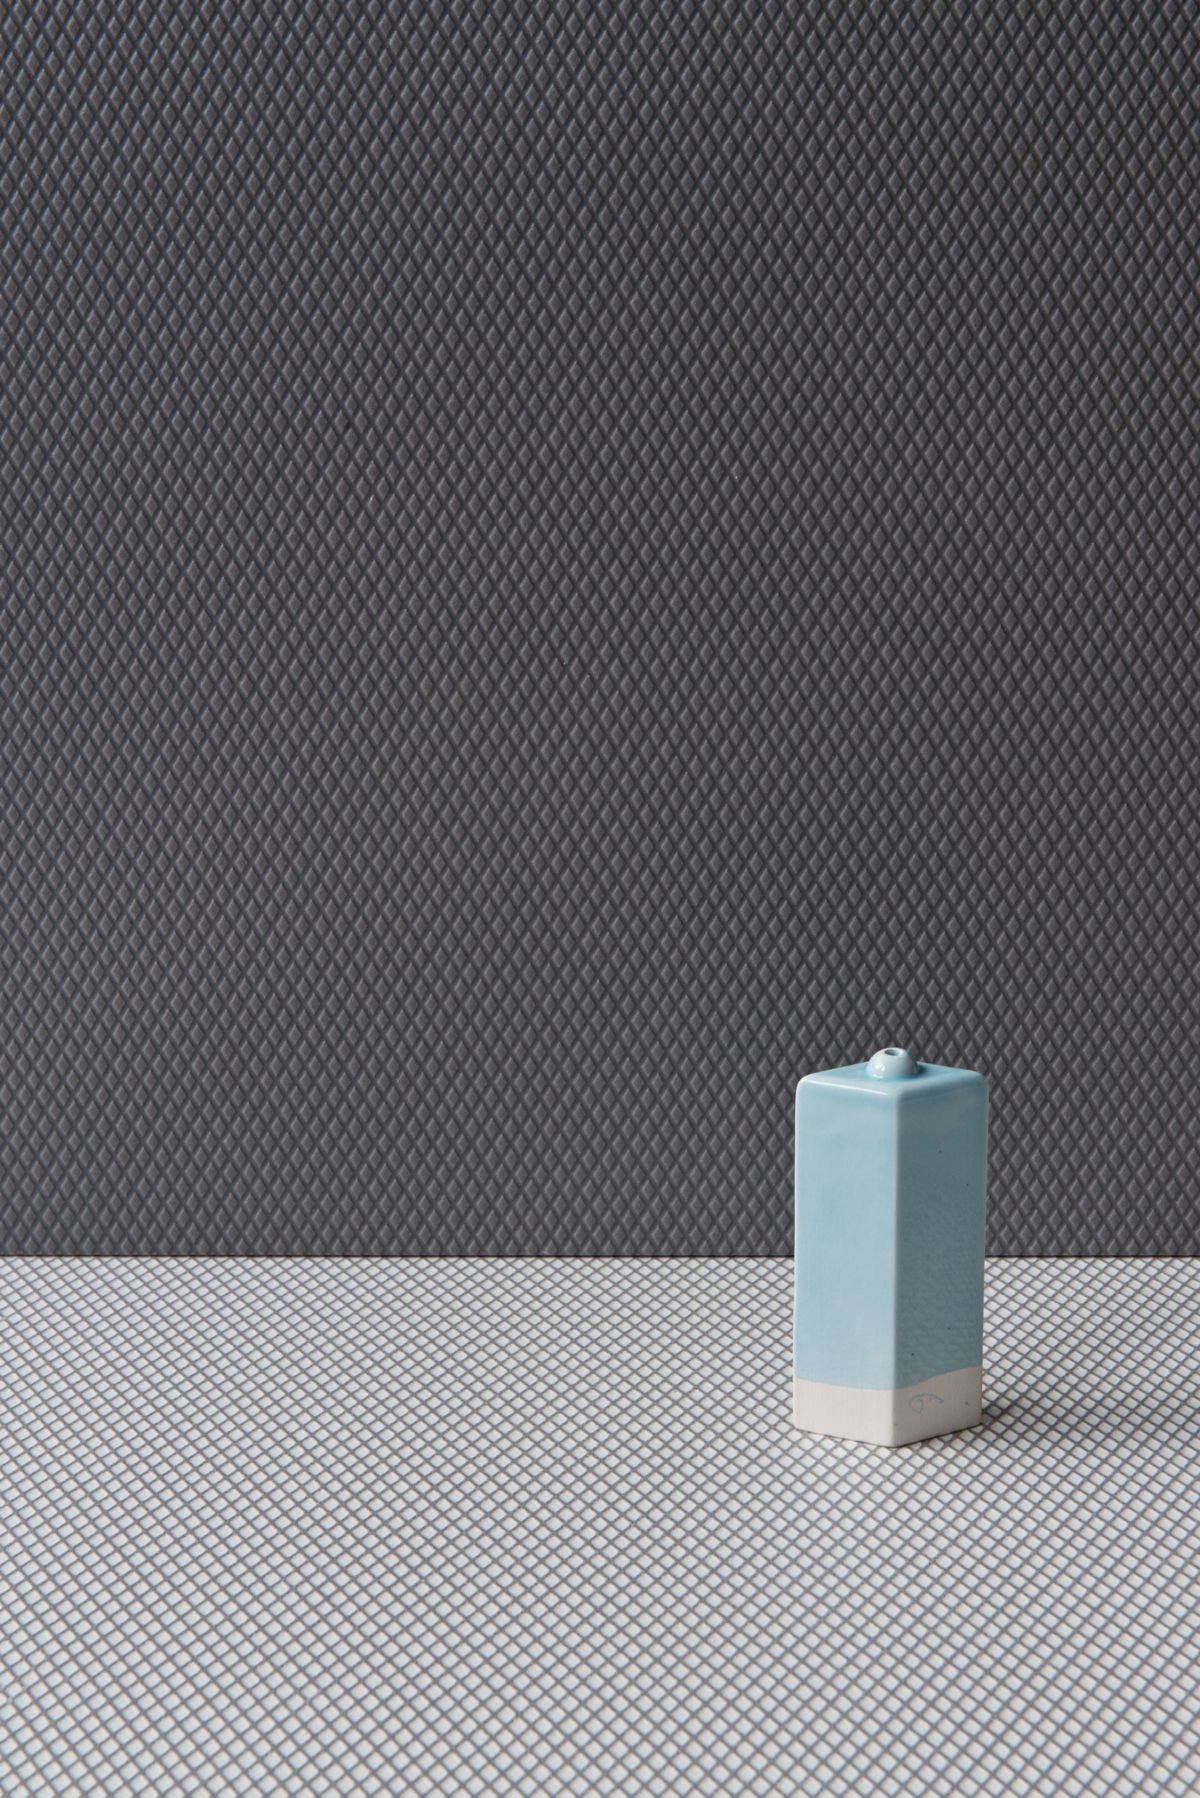 surface carrelage collection rombini bouroullec surface salledebain. Black Bedroom Furniture Sets. Home Design Ideas